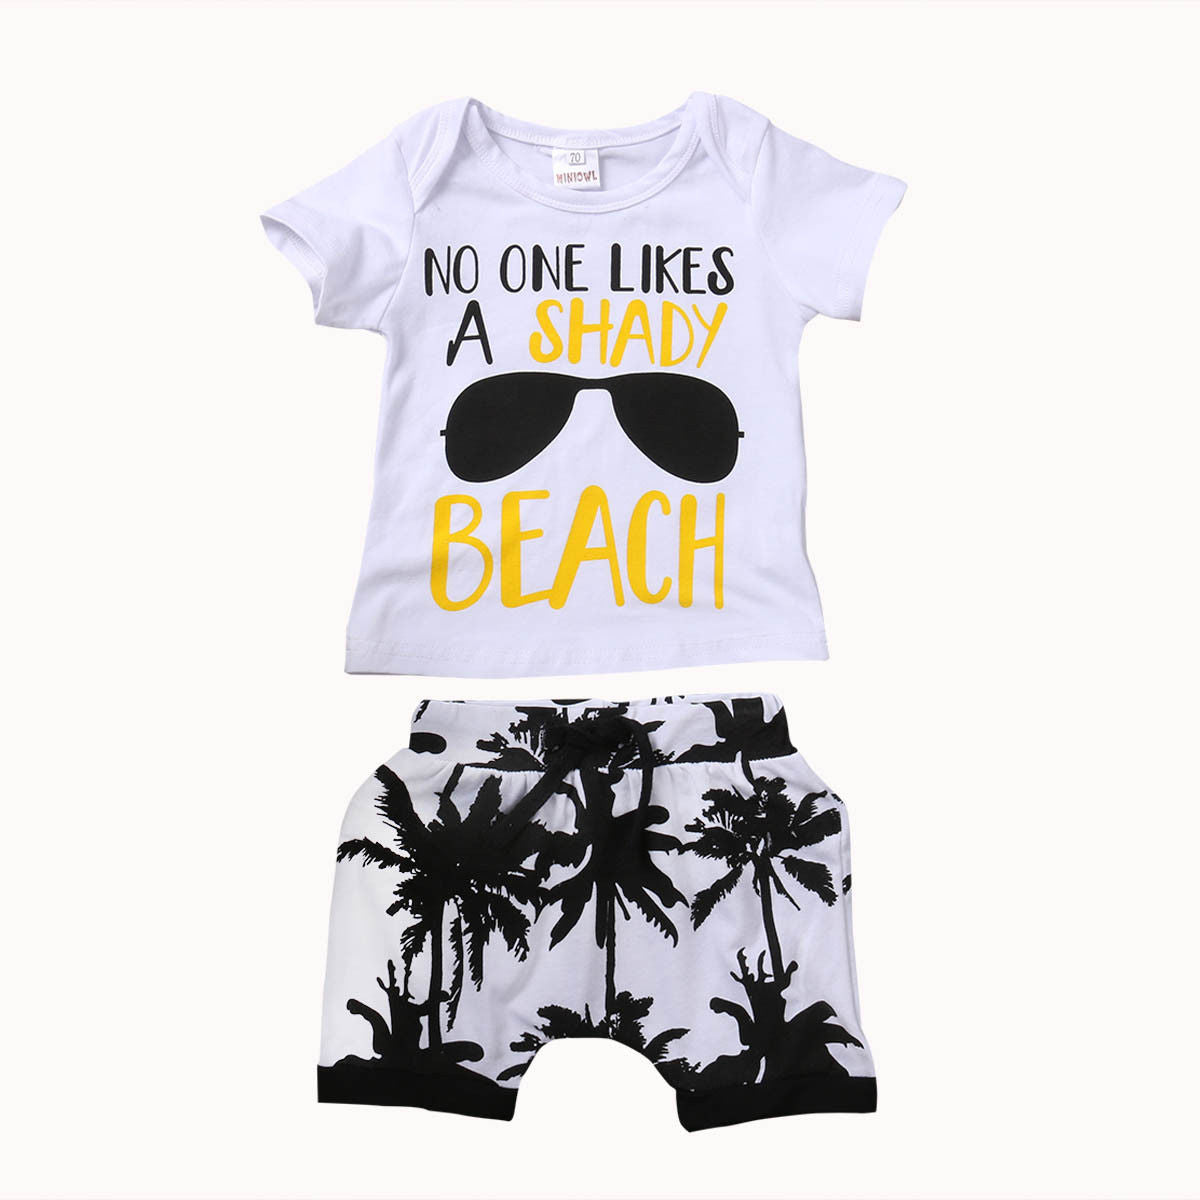 Toddler Newborn Baby Boy Clothes Set Letter Outfit Boys Short Sleeve T-shirt Tops Pants Shorts Children Clothing 0-3T 2Pcs-eosegal